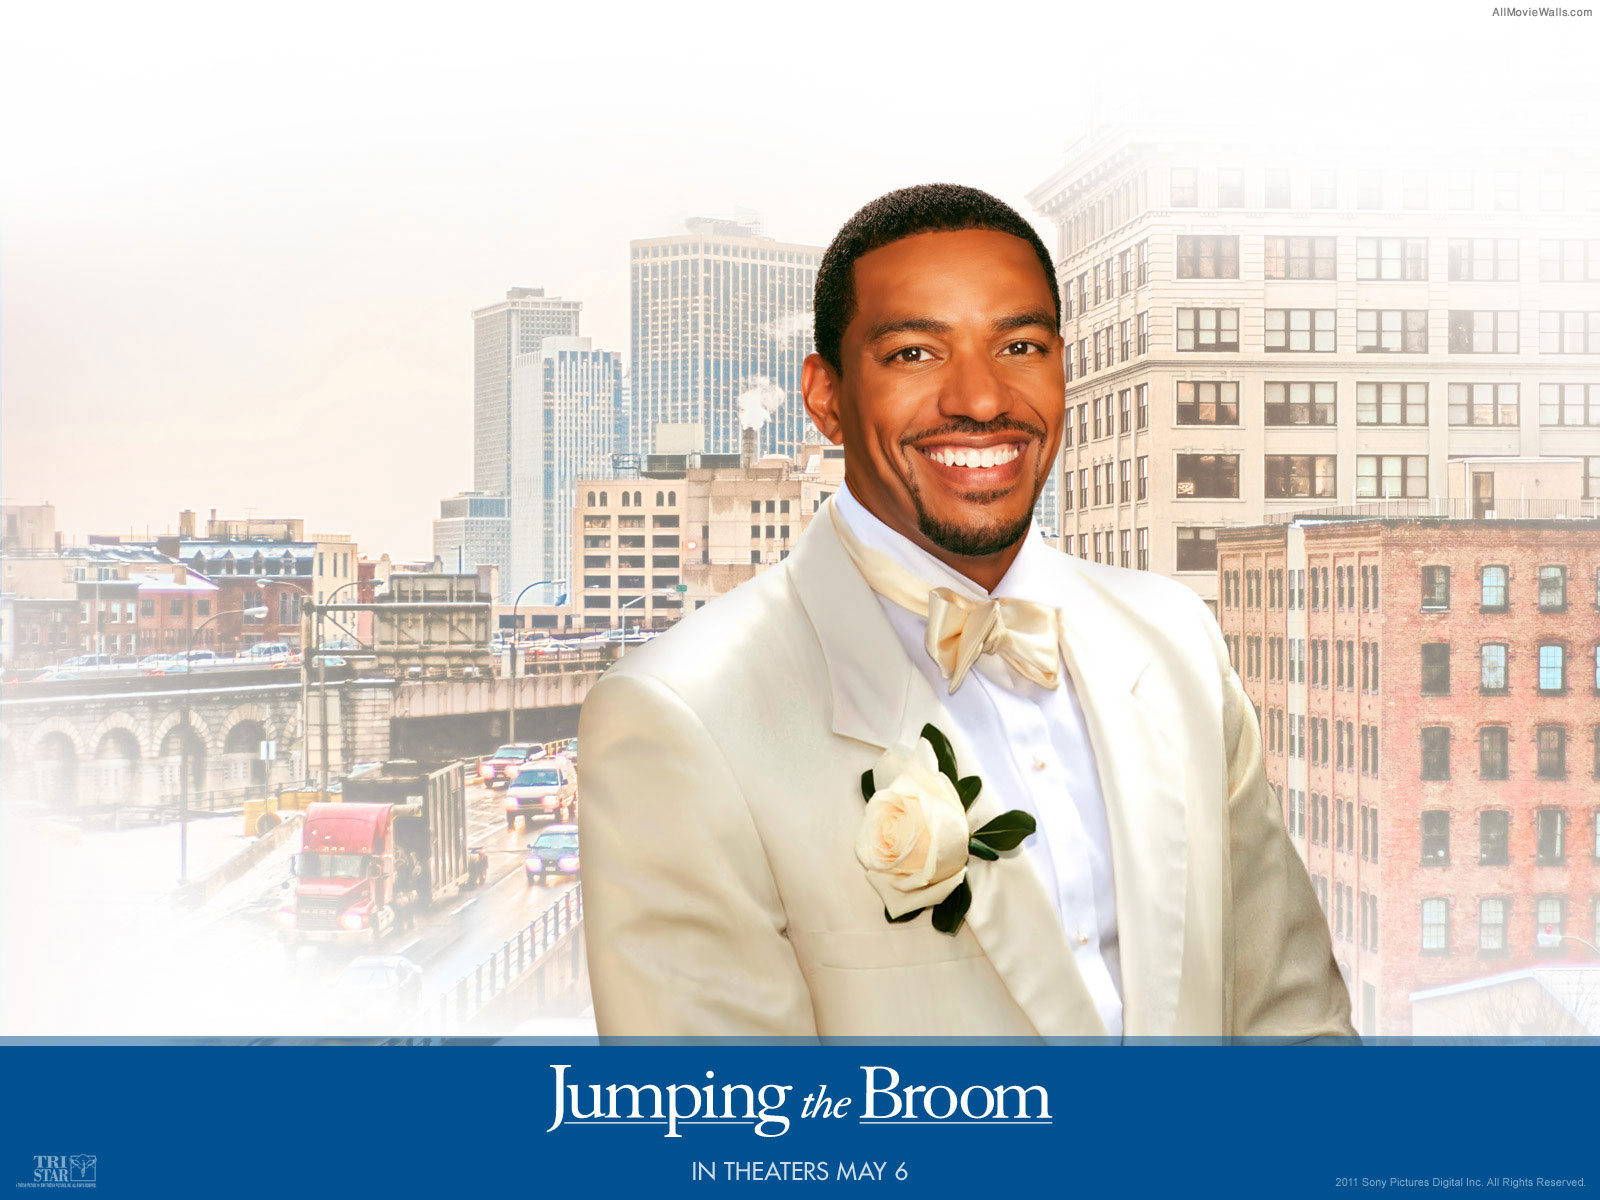 Jumping the Broom - Movies Wallpaper (25400432) - Fanpop